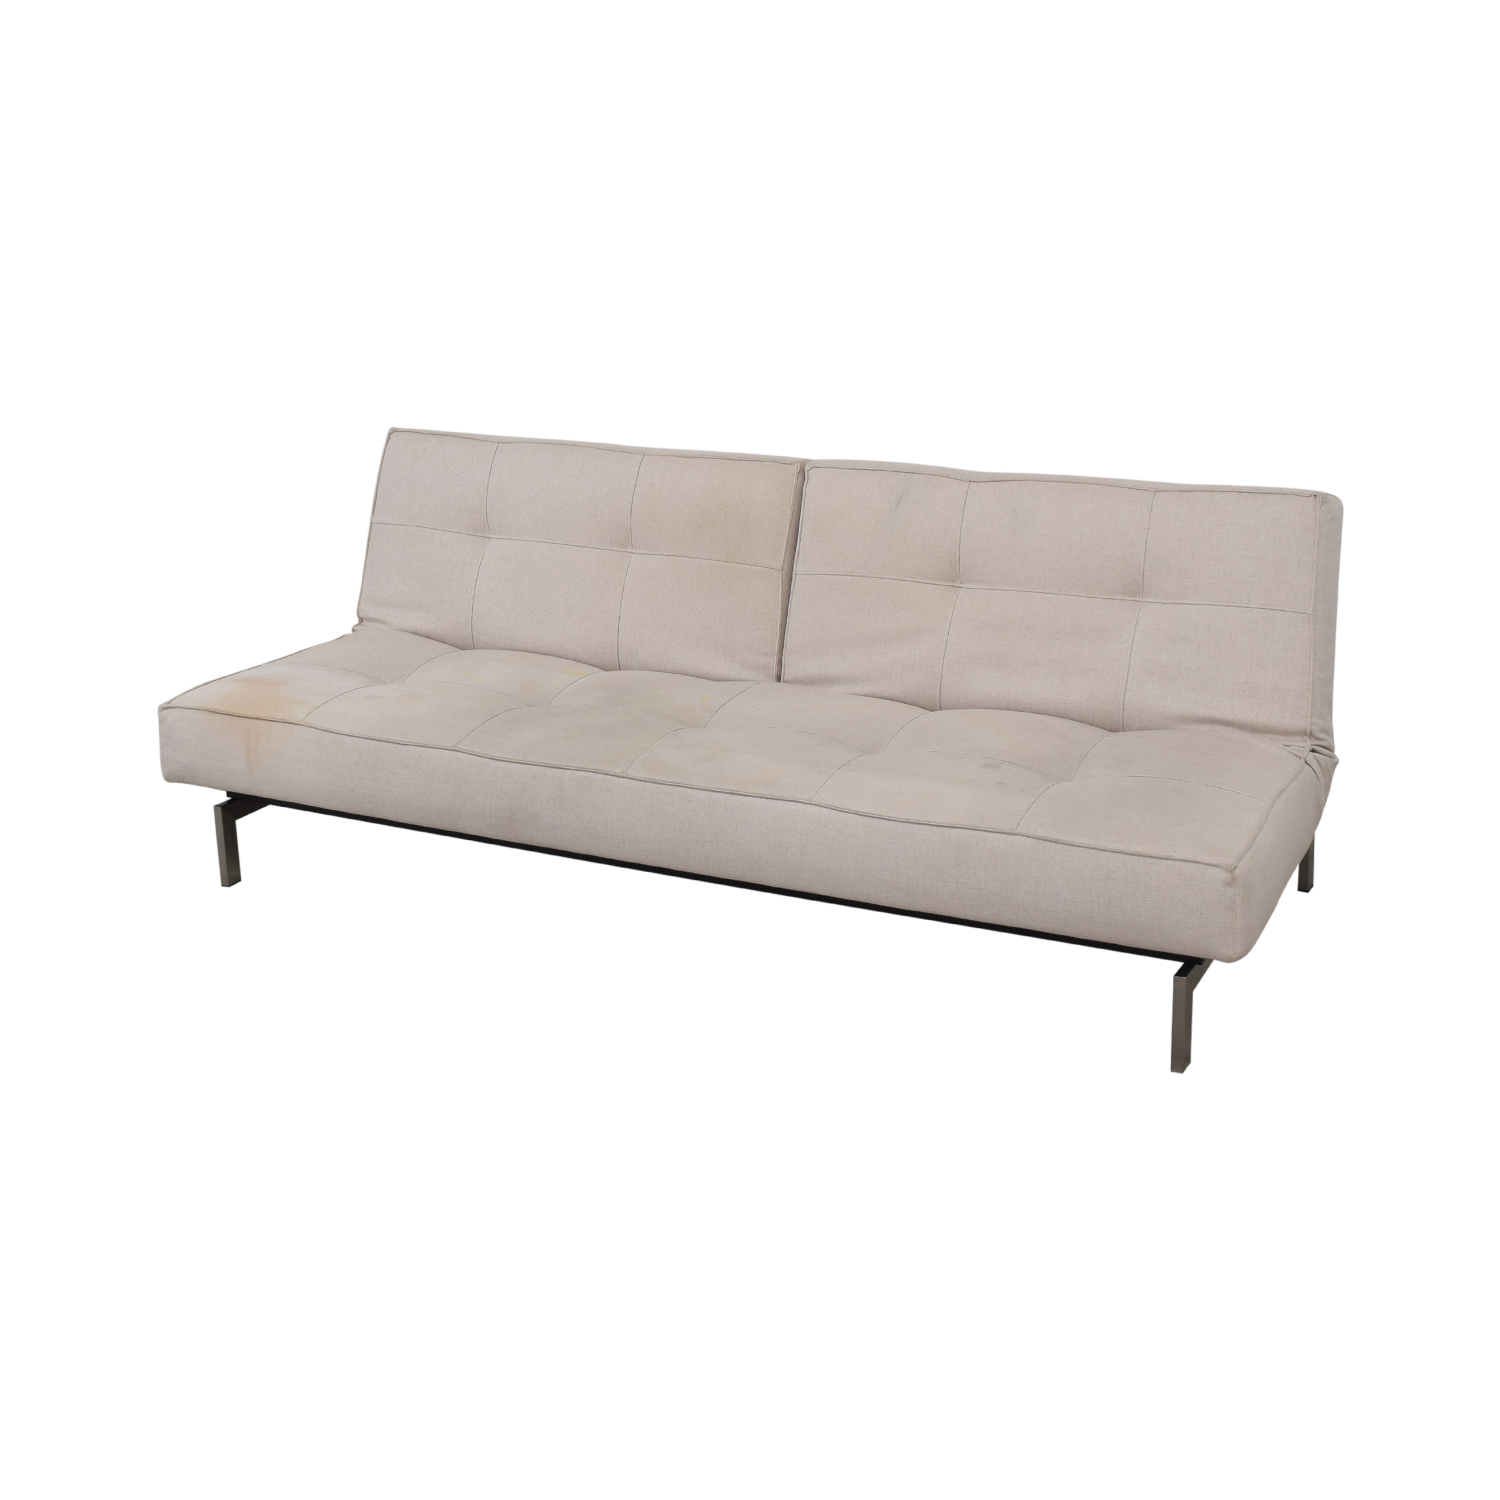 ABC Carpet & Home ABC Carpet & Home Cobble Hill Sofa used